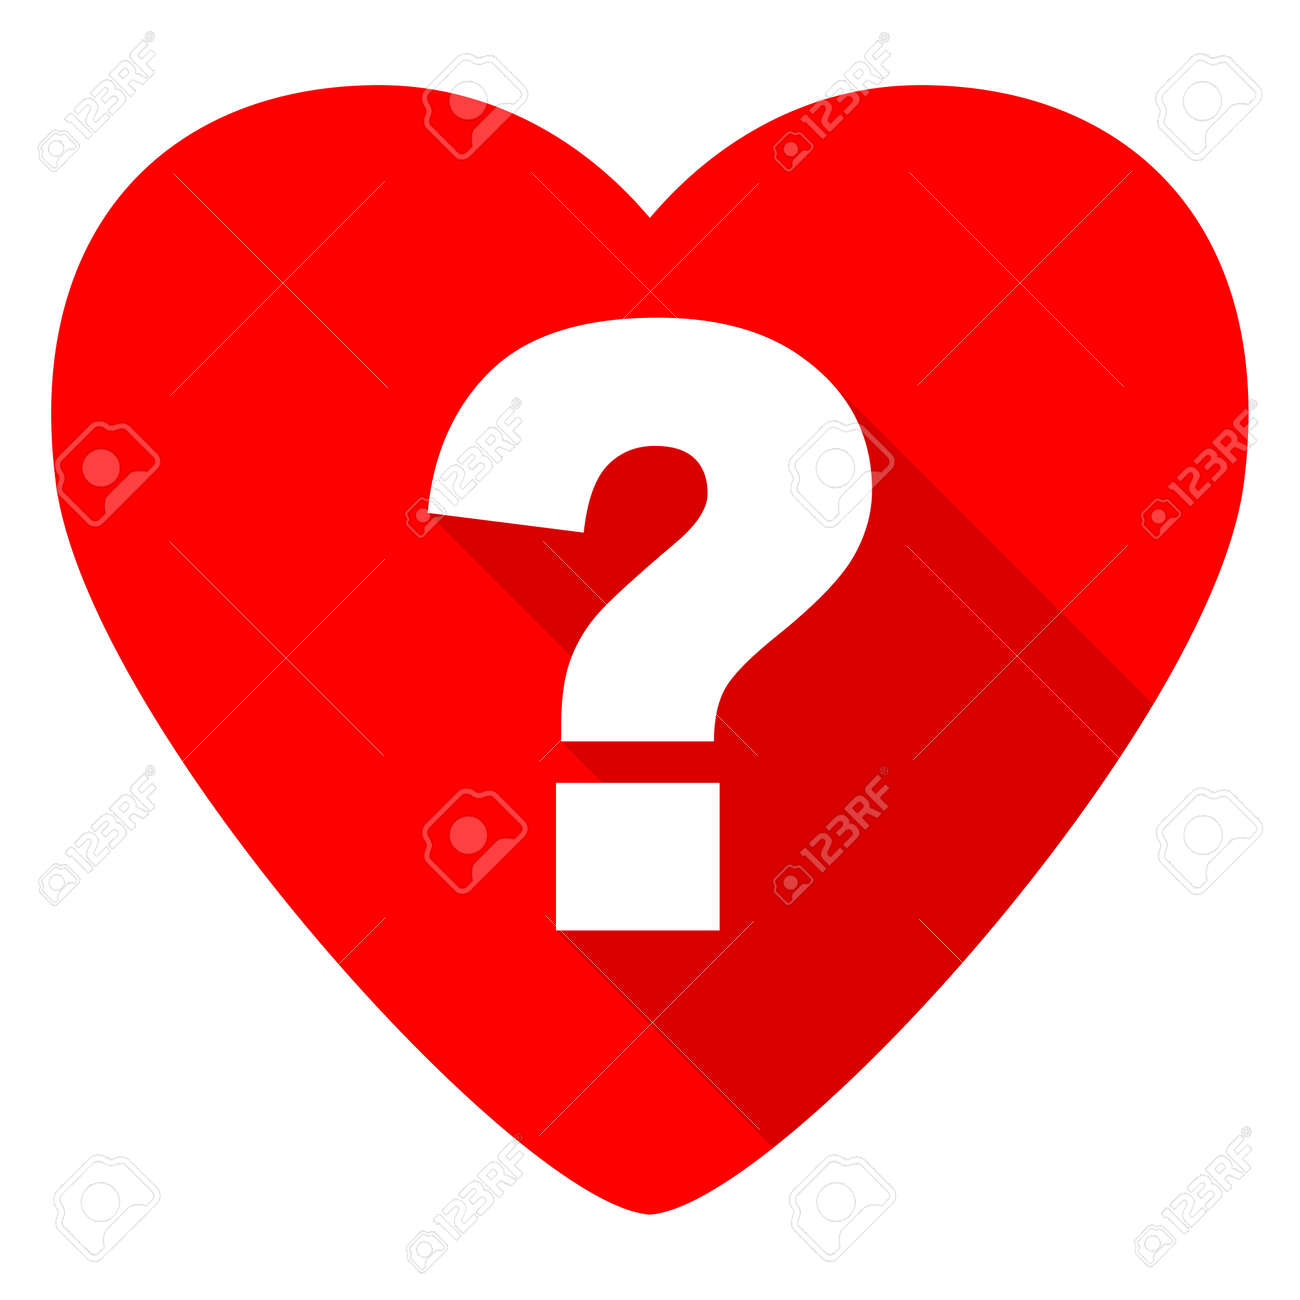 Question Mark Red Heart Valentine Flat Icon Stock Photo, Picture ...